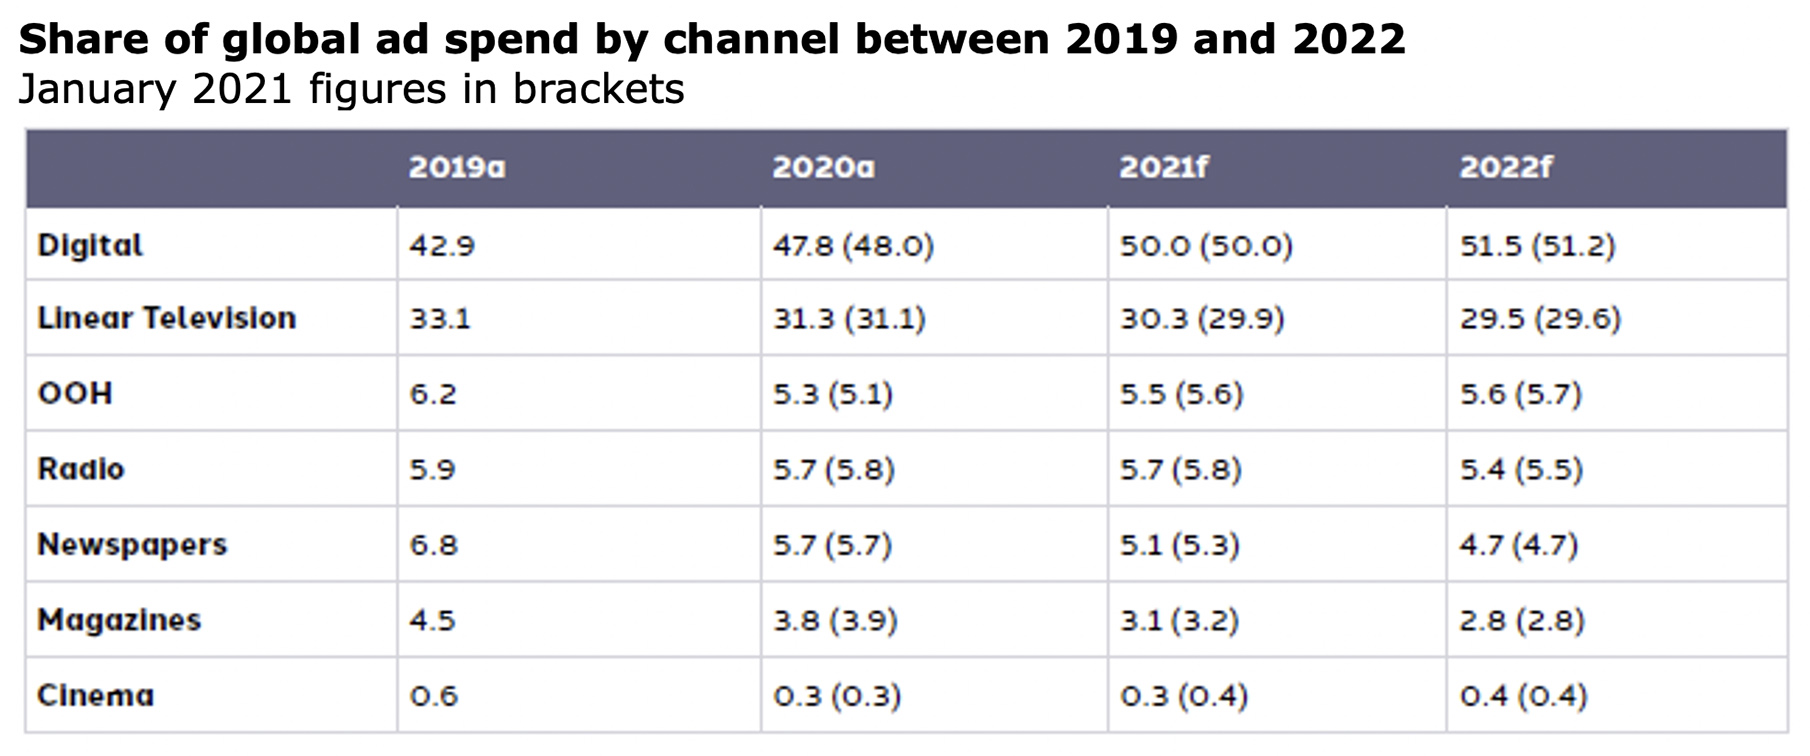 Dentsu report highlights green shoots of ad spend recovery led by digital resilience, promising growth into 2022 in Asia Pacific